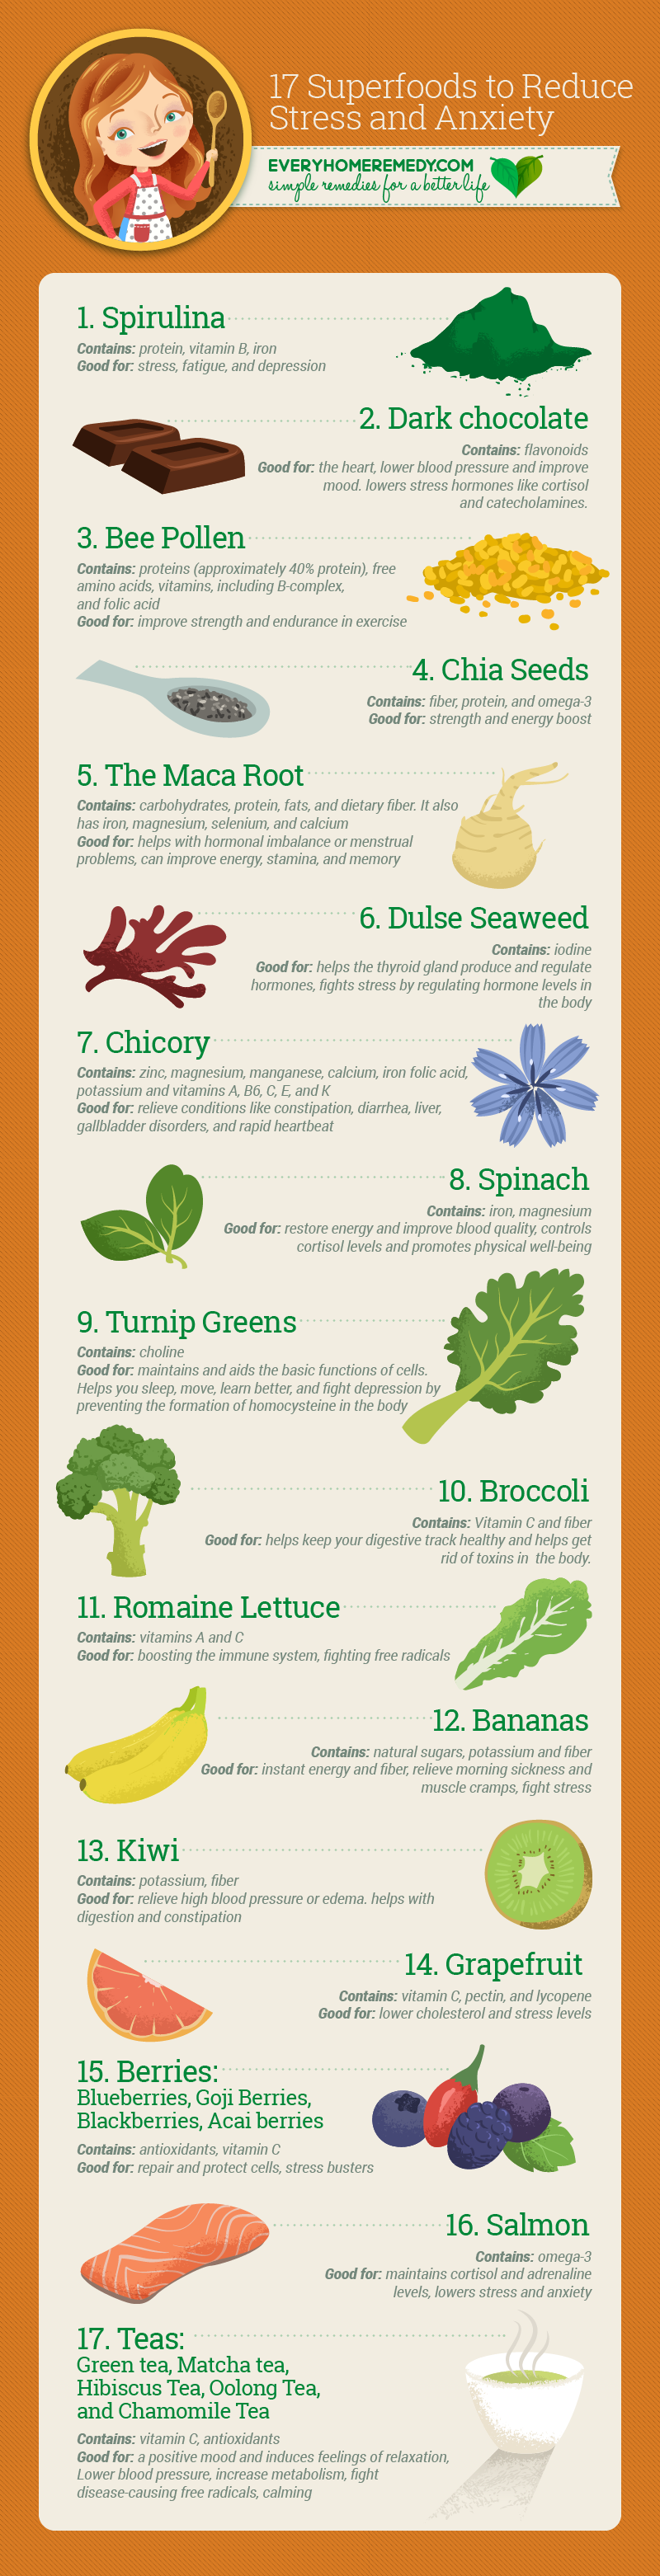 17 superfoods to reduce stress and anxiety |